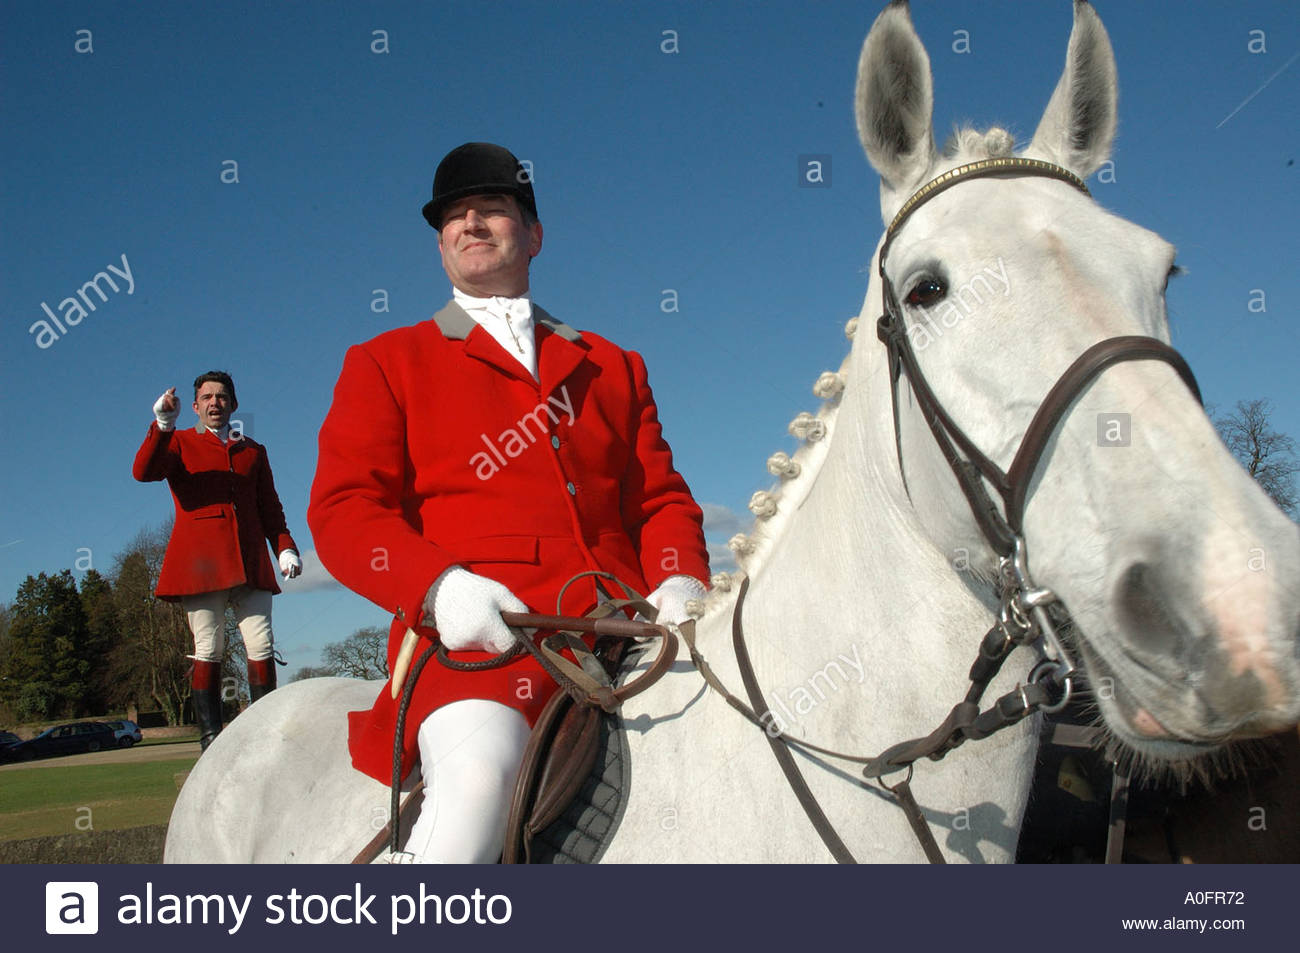 Cheshire Forest Hunt meeting in a show of defiance two days after fox hunting with dogs was banned in England 19 February 2005 - Stock Image